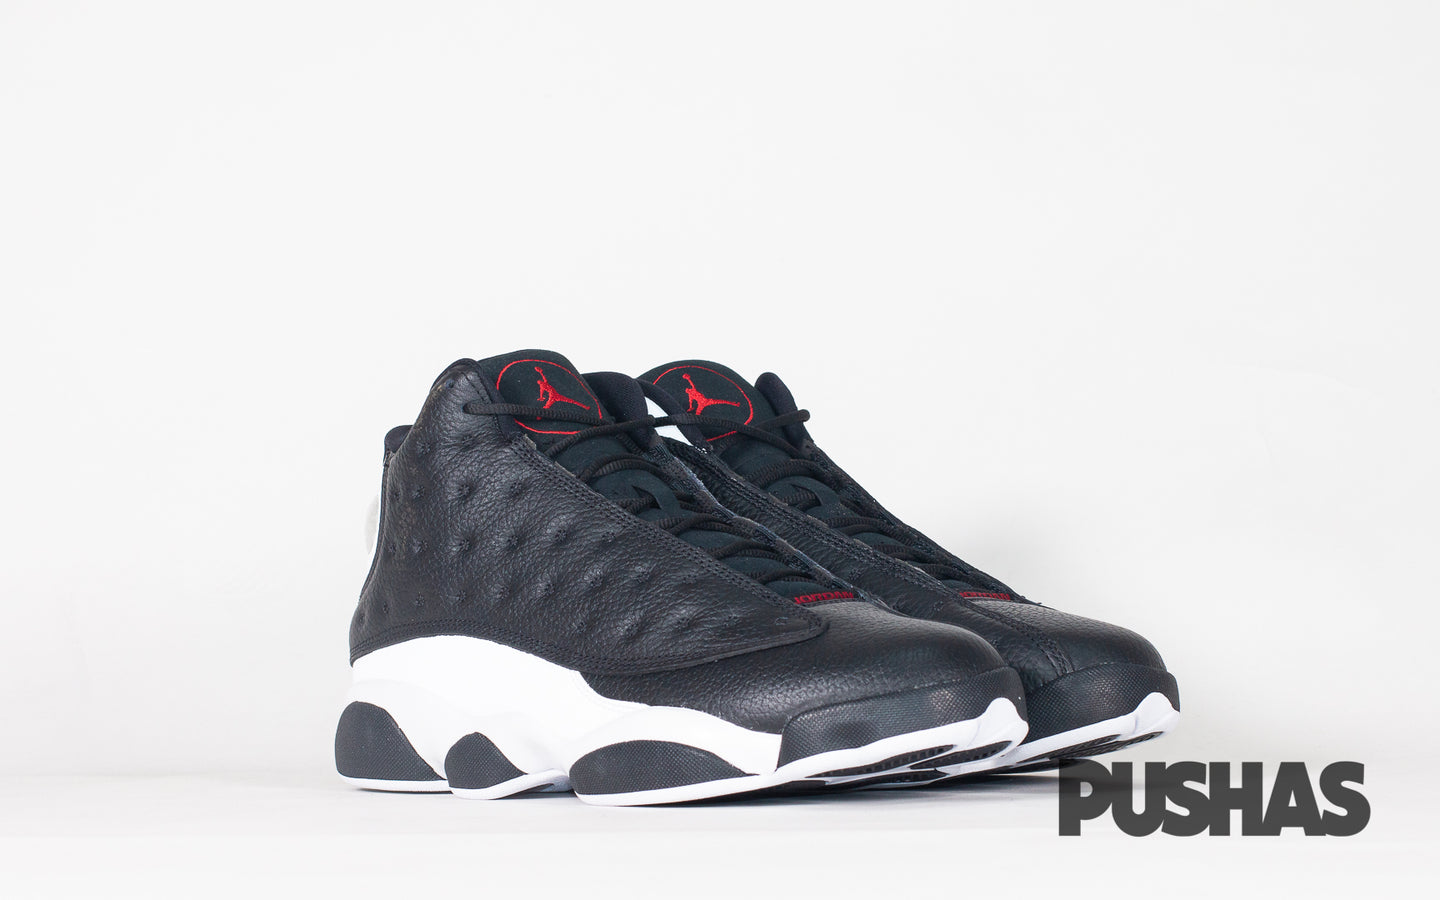 pushas-nike-Air-Jordan-13-Reverse-He-Got-Game